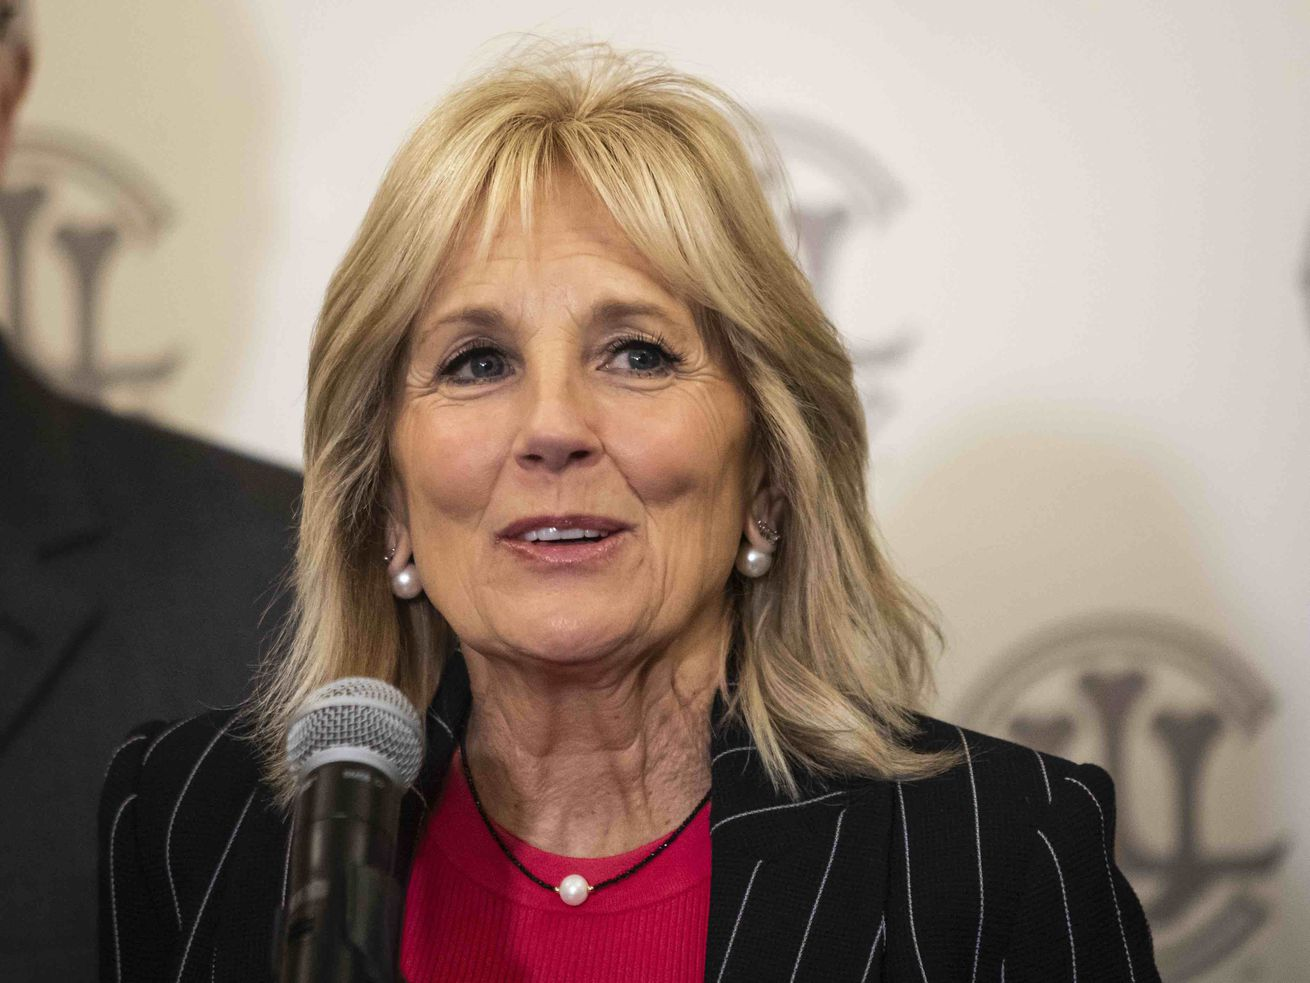 Jill Biden hits suburban Chicago for fundraiser: 'We have the momentum'